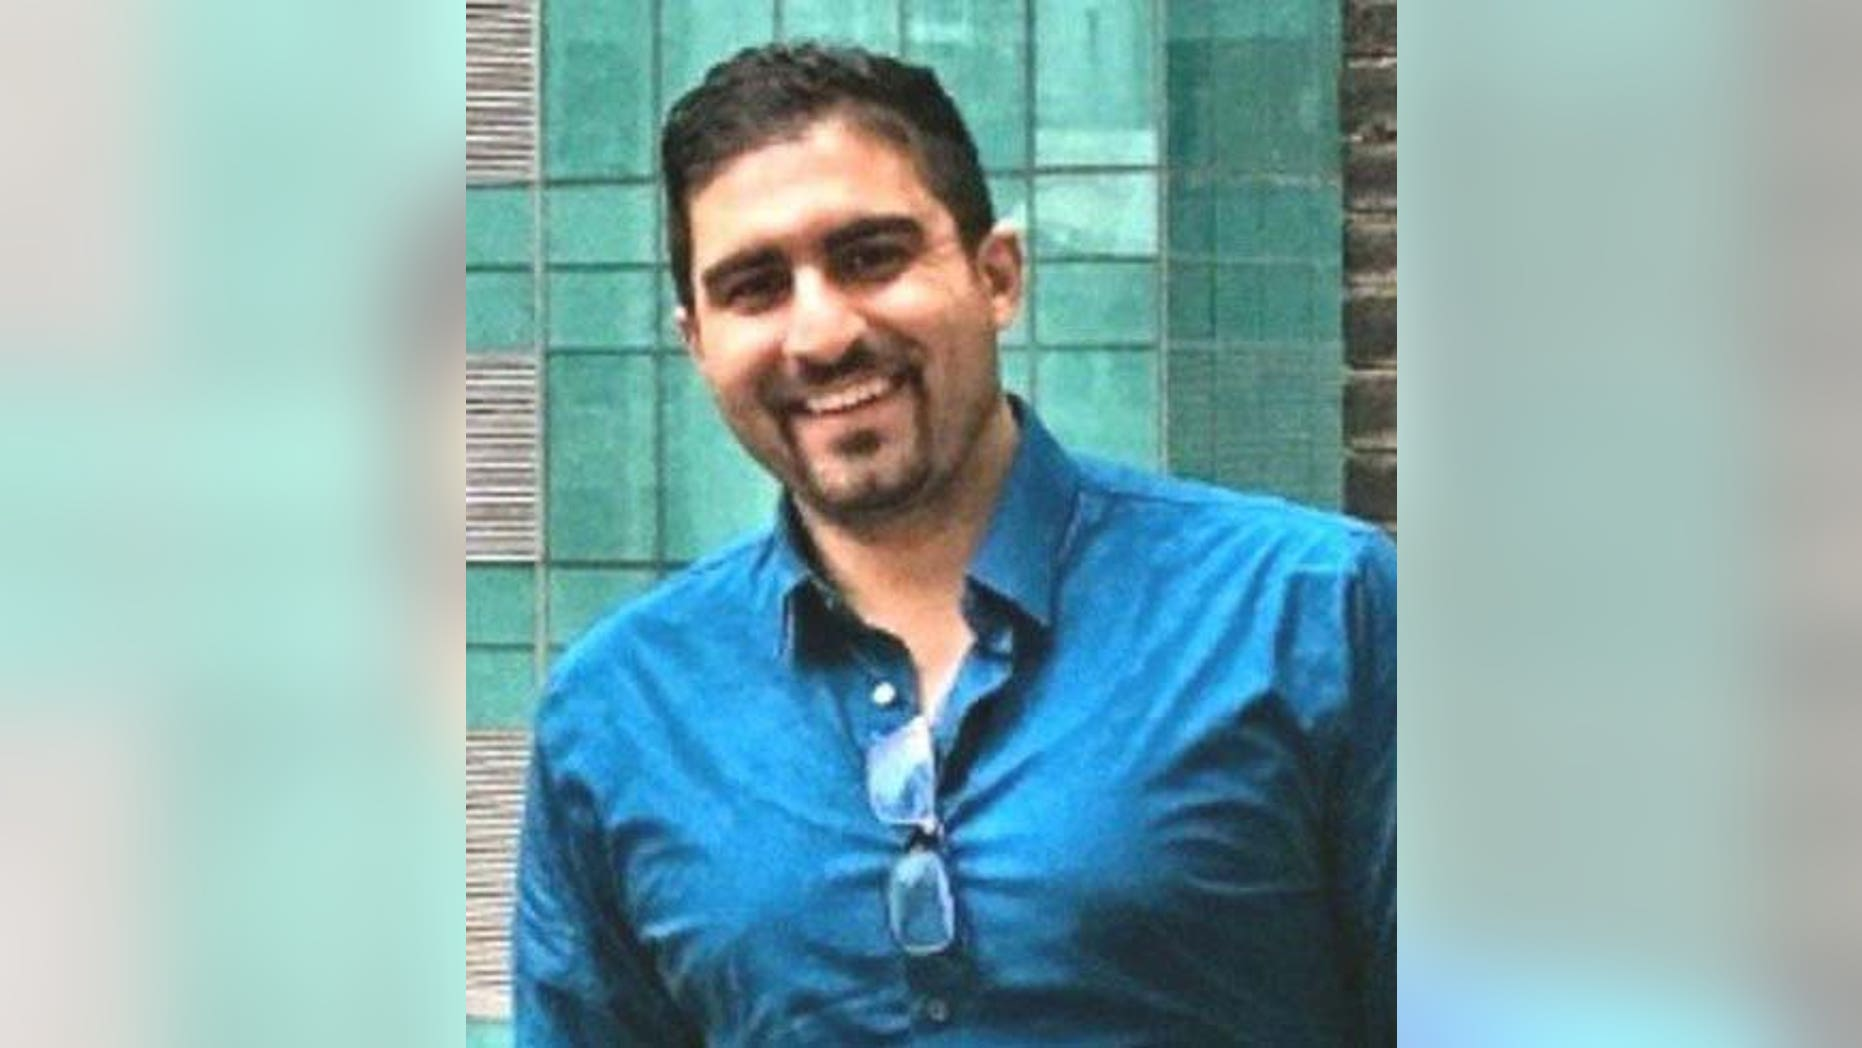 The trial began Monday of alleged Hezbollah agent living in the Bronx, Ali Kourani.